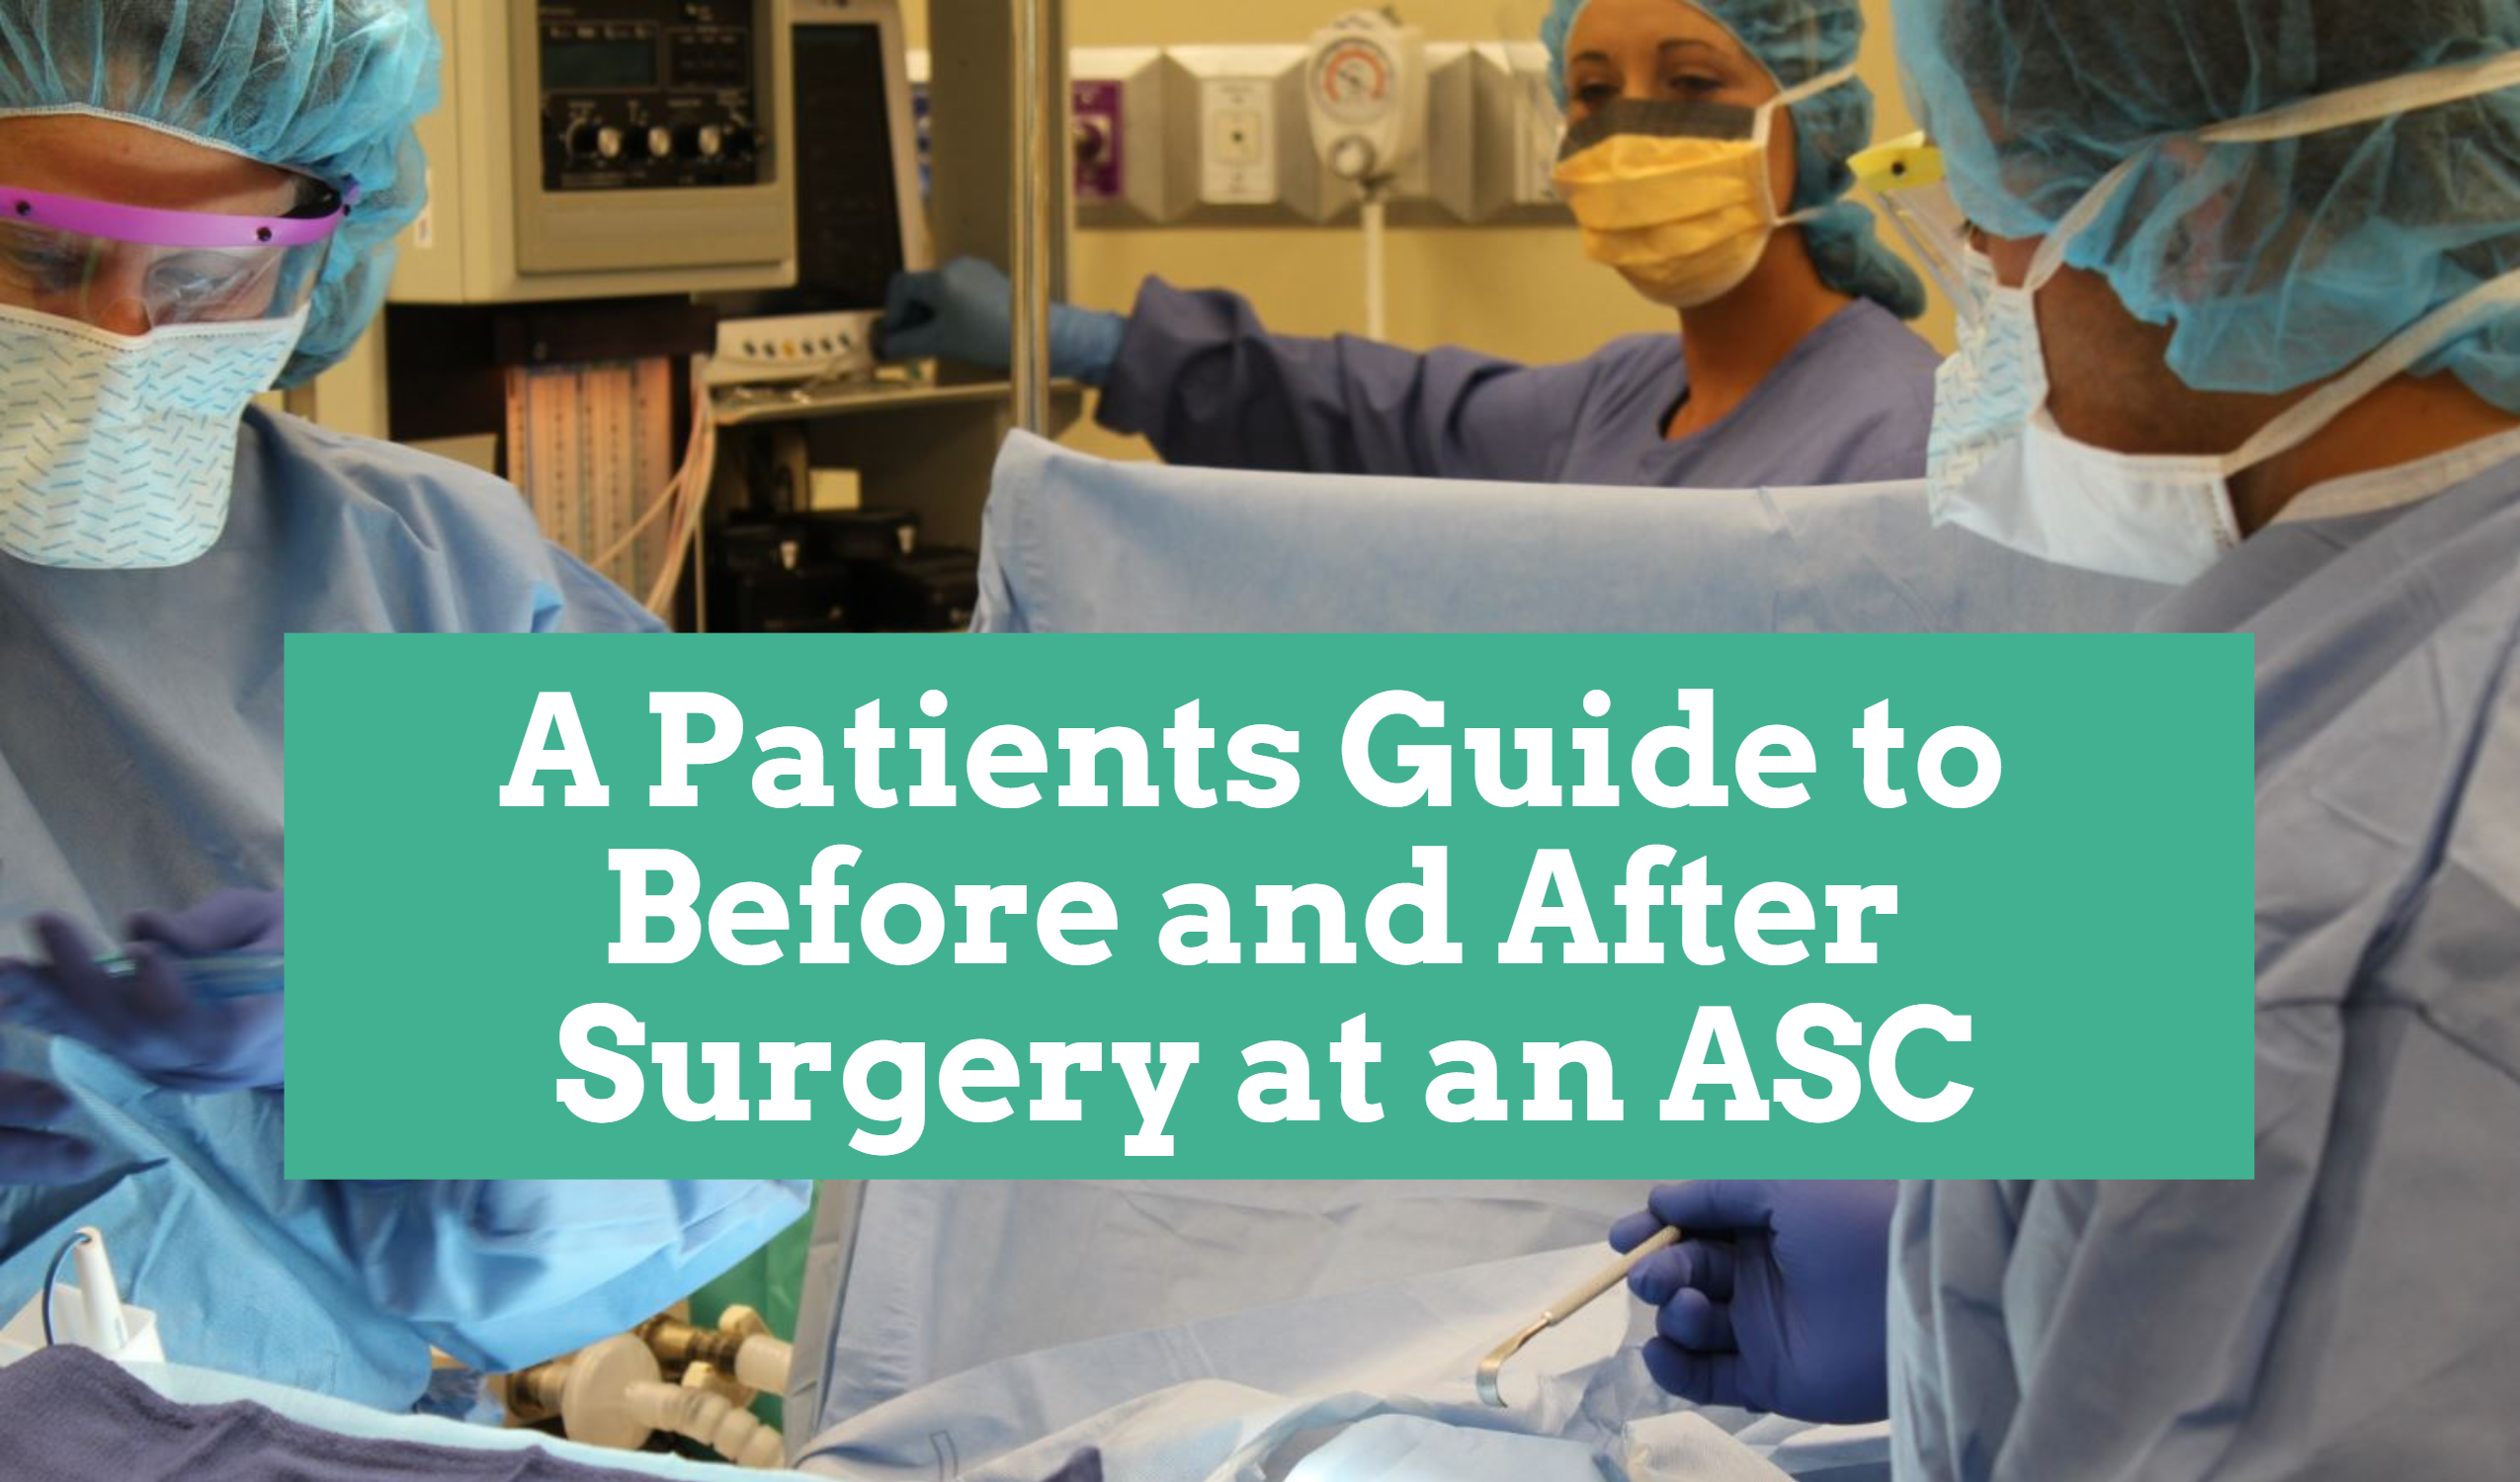 A Patients Guide to Before and After Surgery at an ASC